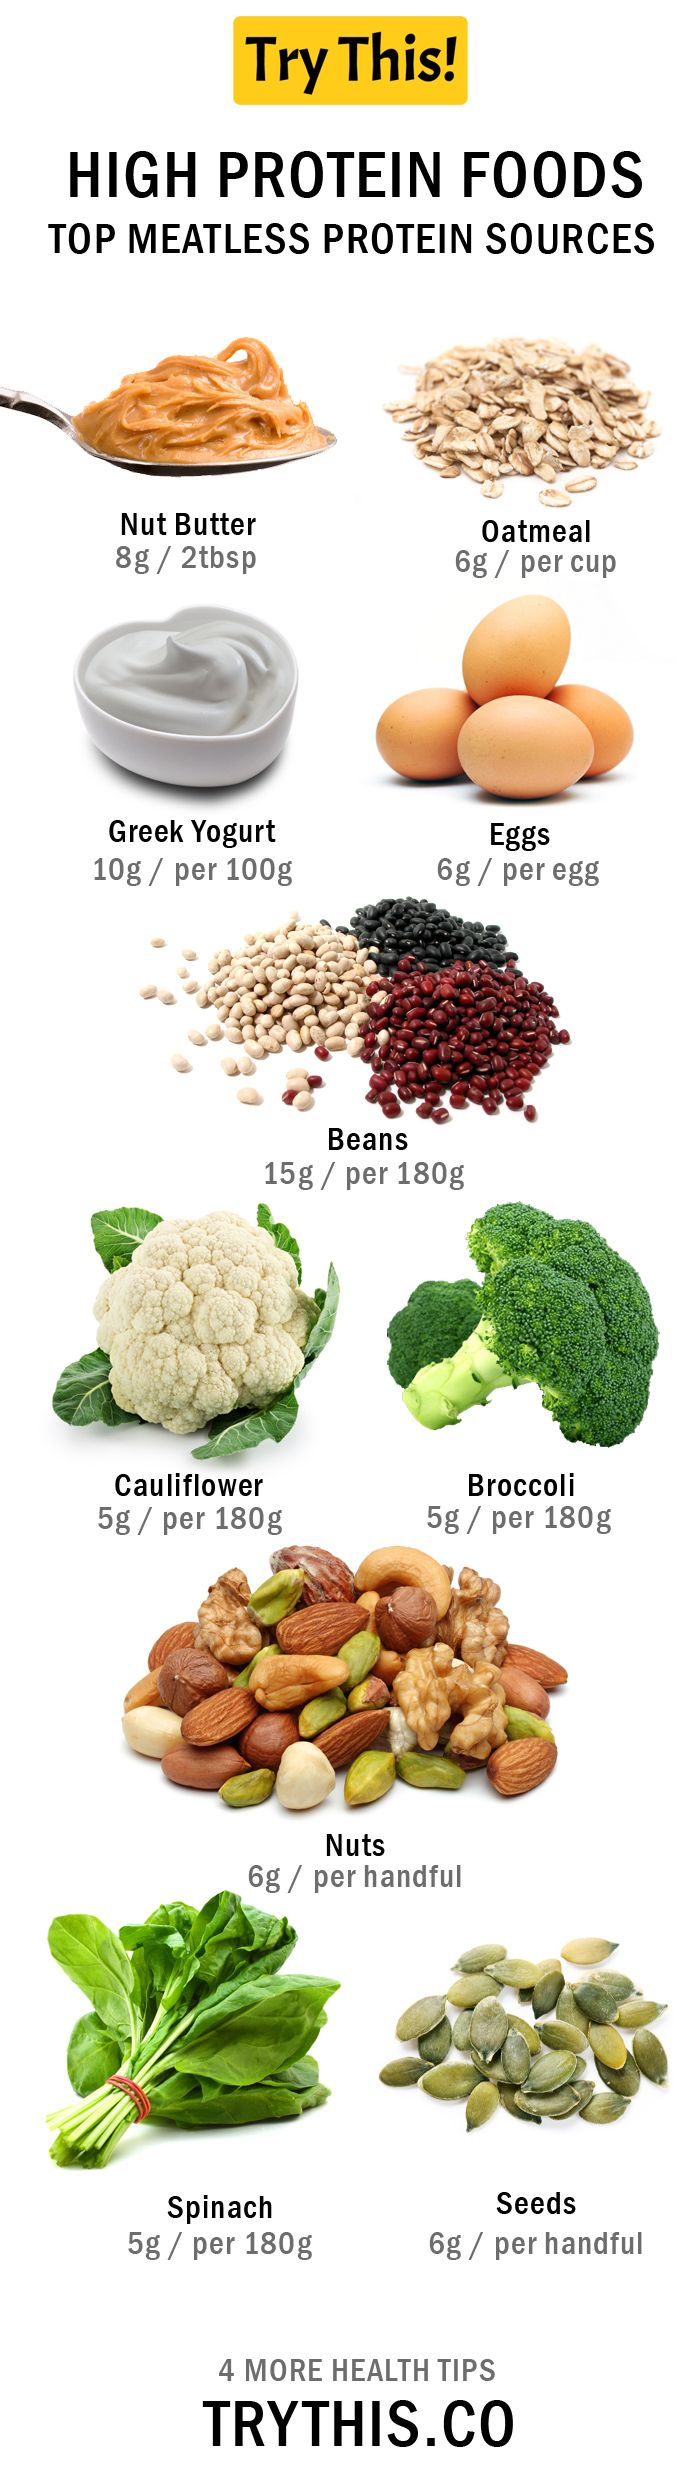 High Protein Foods Top Meatless Protein Foods